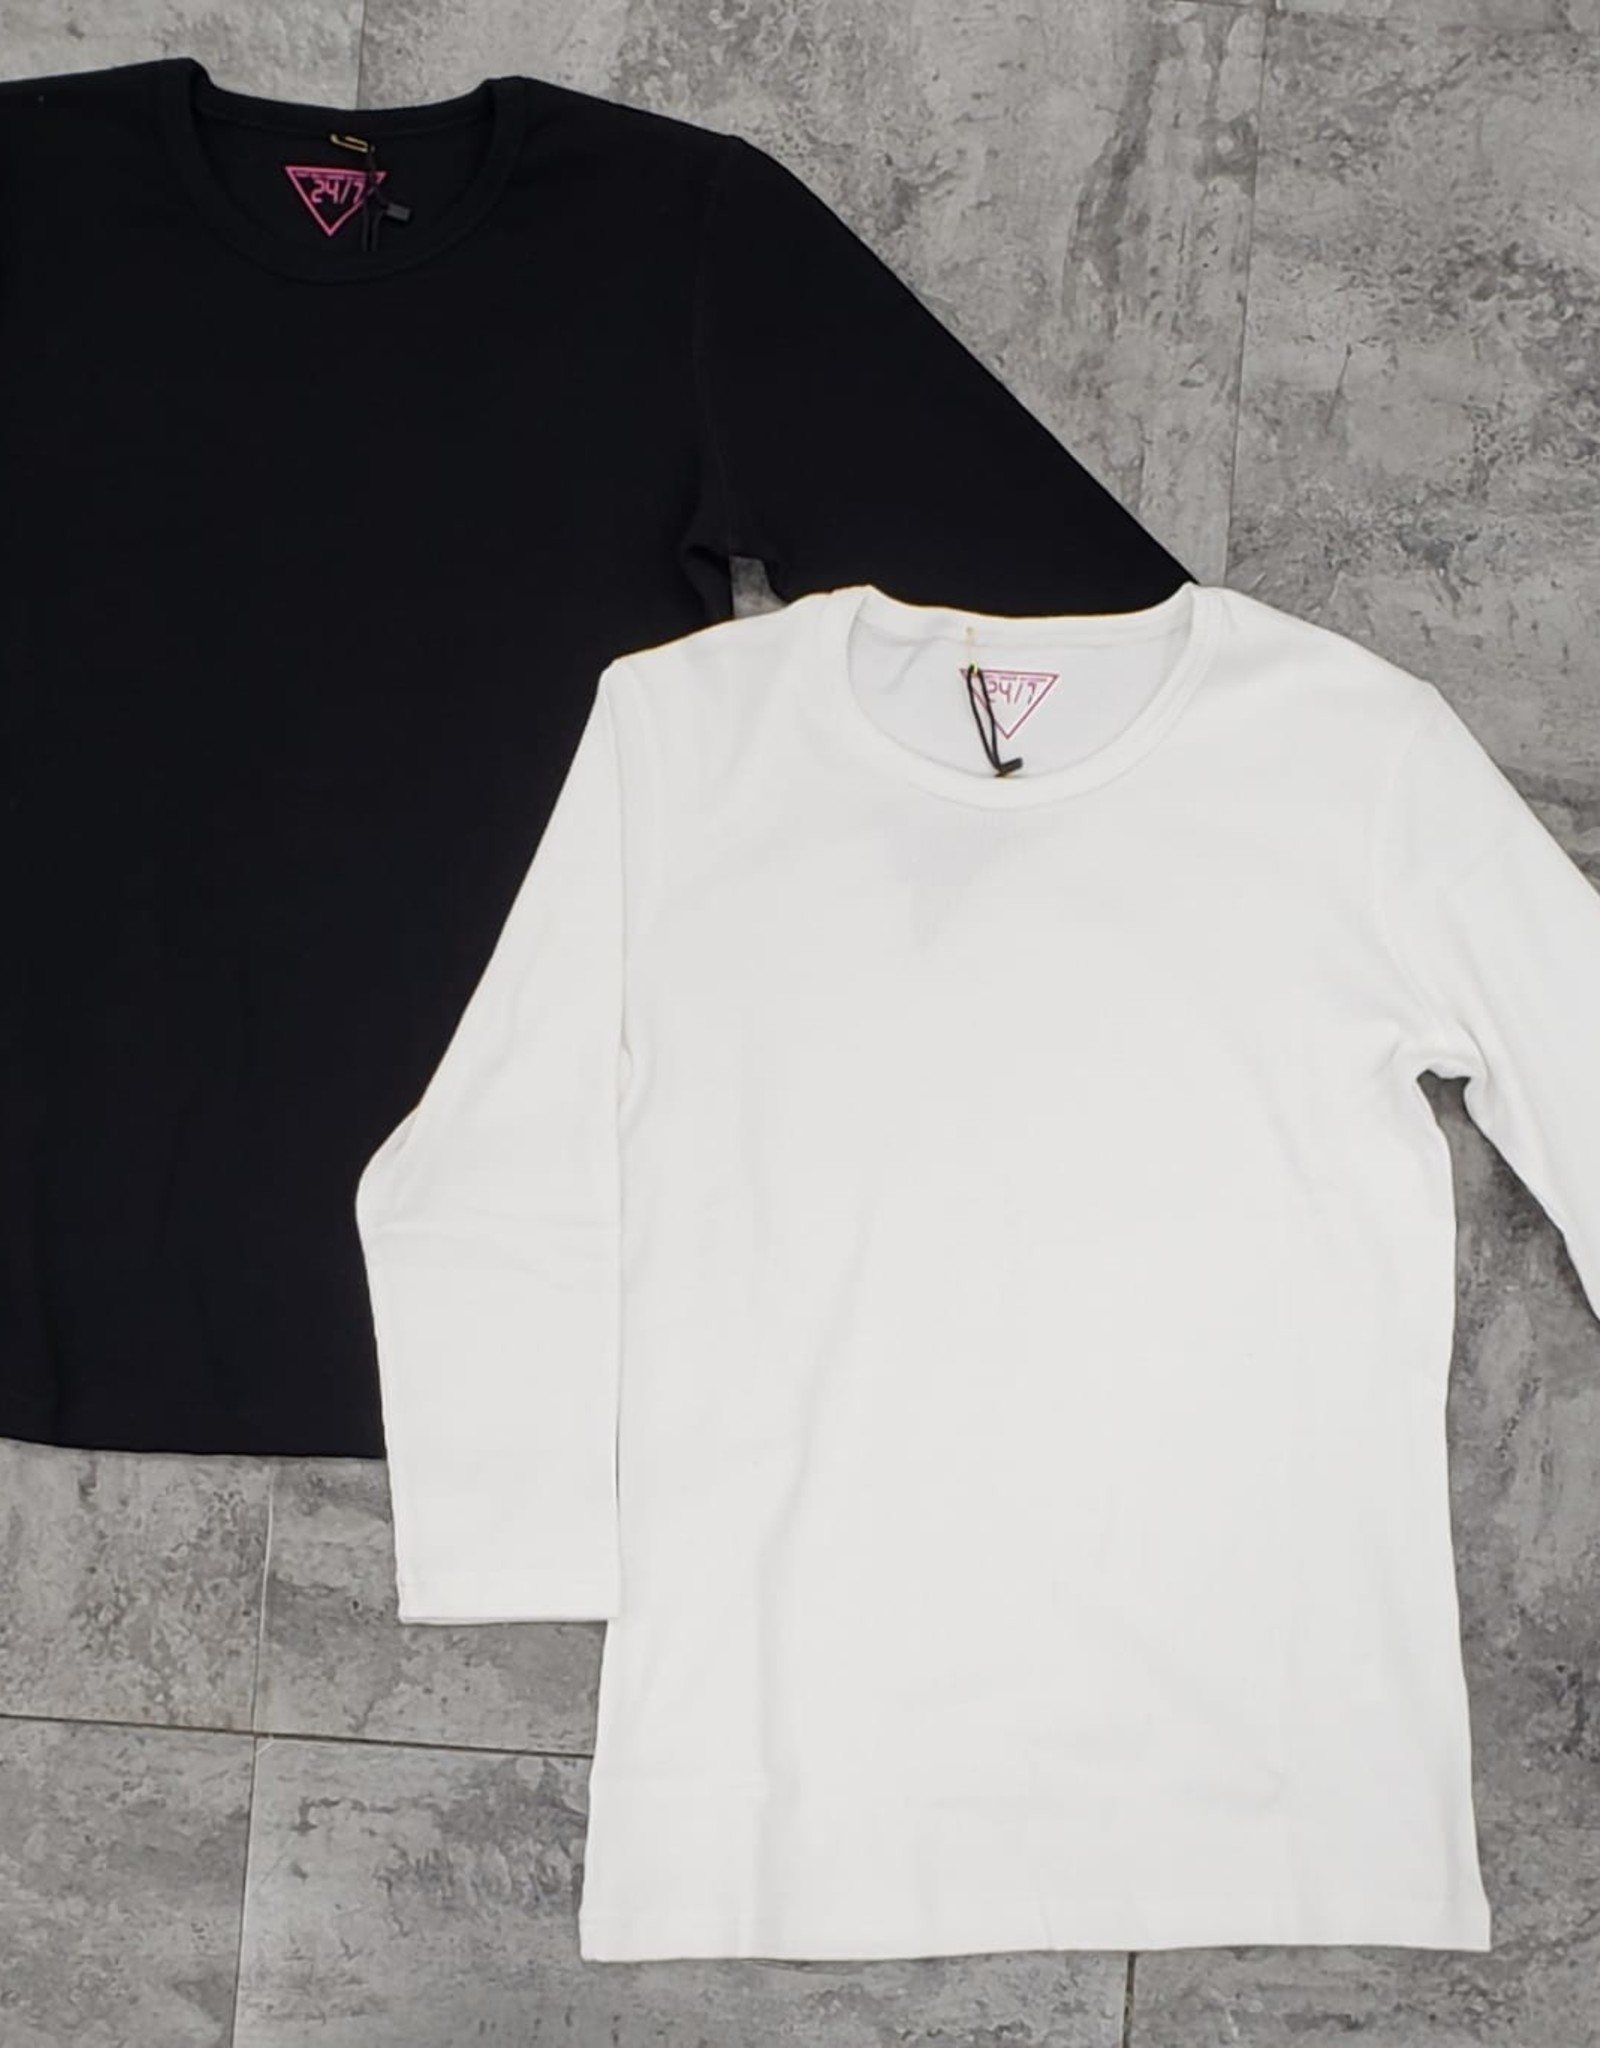 24/7 24/7 Ribbed 3/4 Sleeve Tshirt